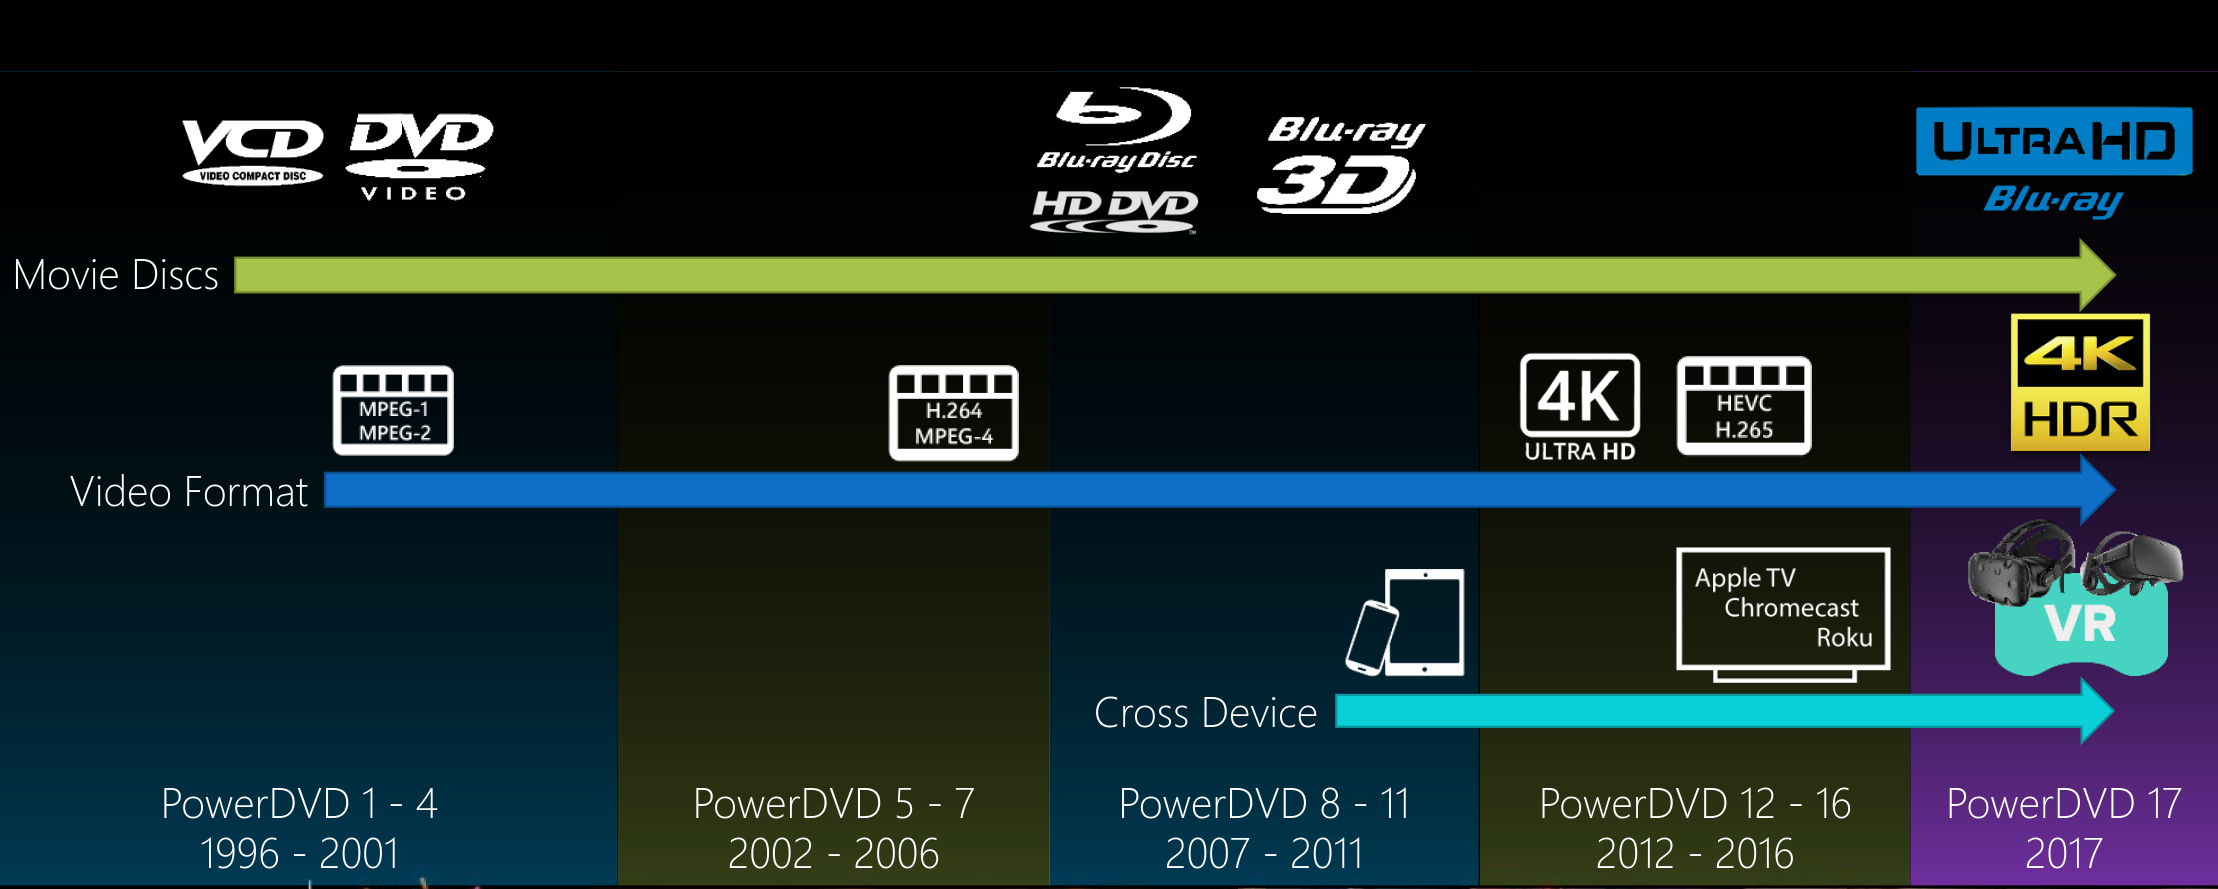 Updating blue ray players